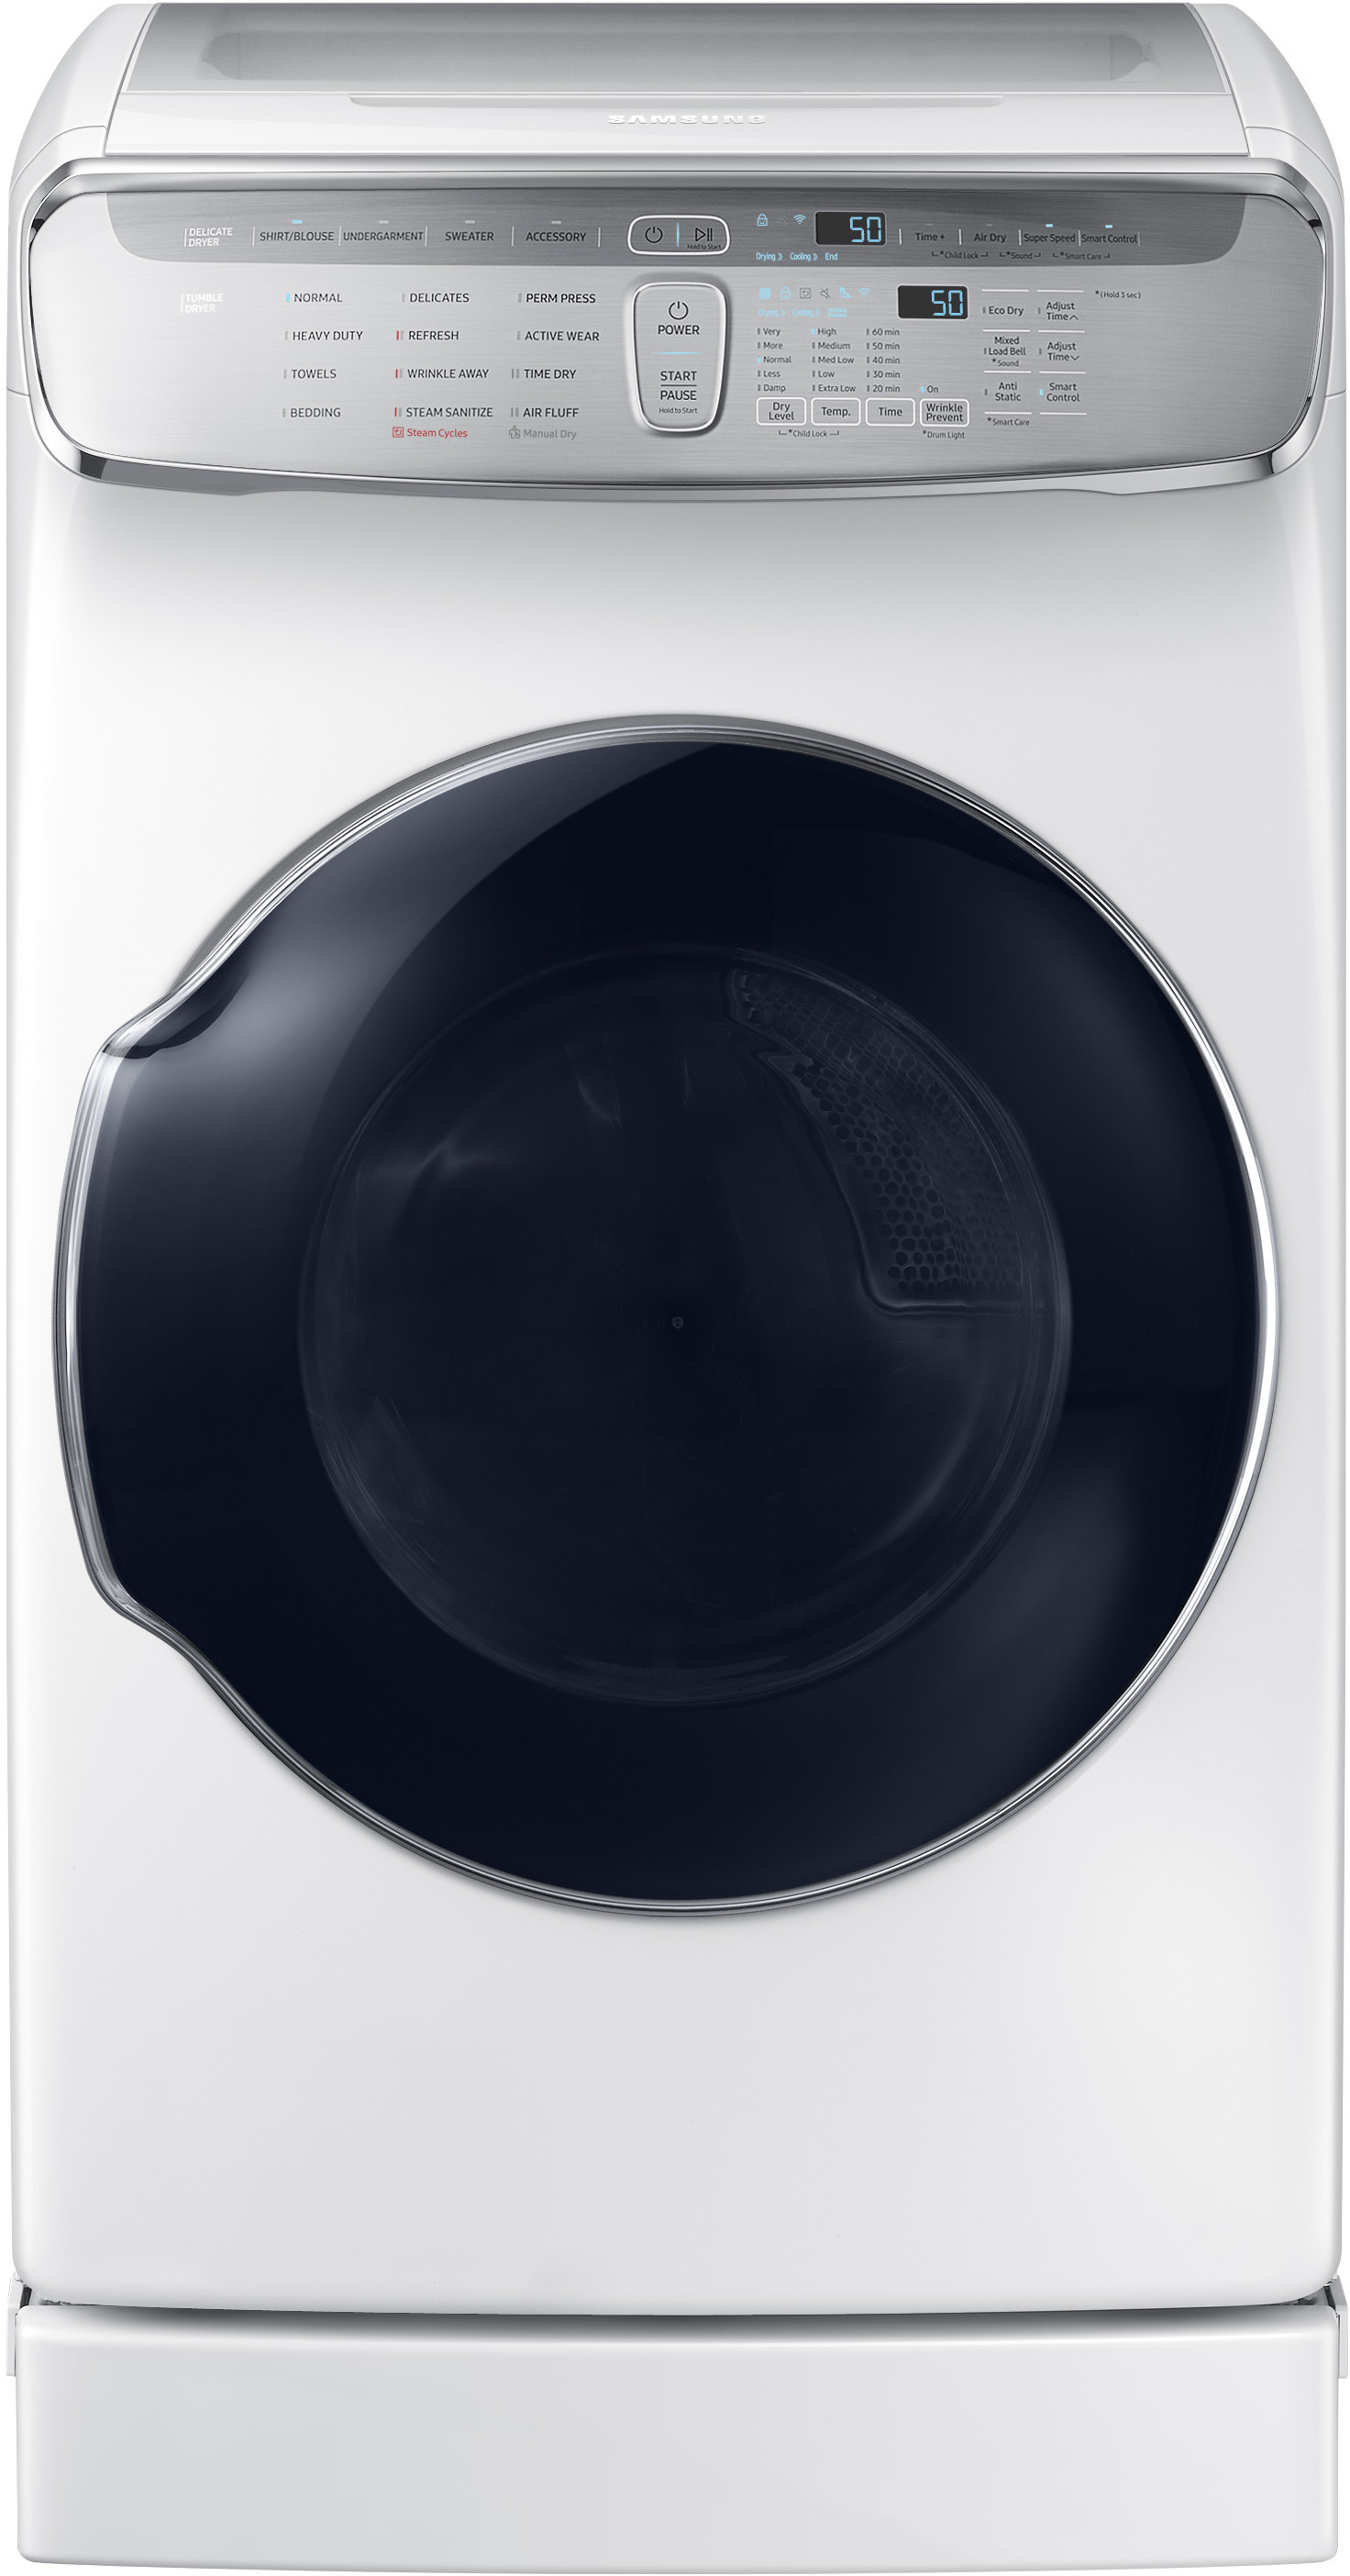 Samsung Appliance Rebate form 2018 Beautiful Samsung Flexwash Dvg60m9900w